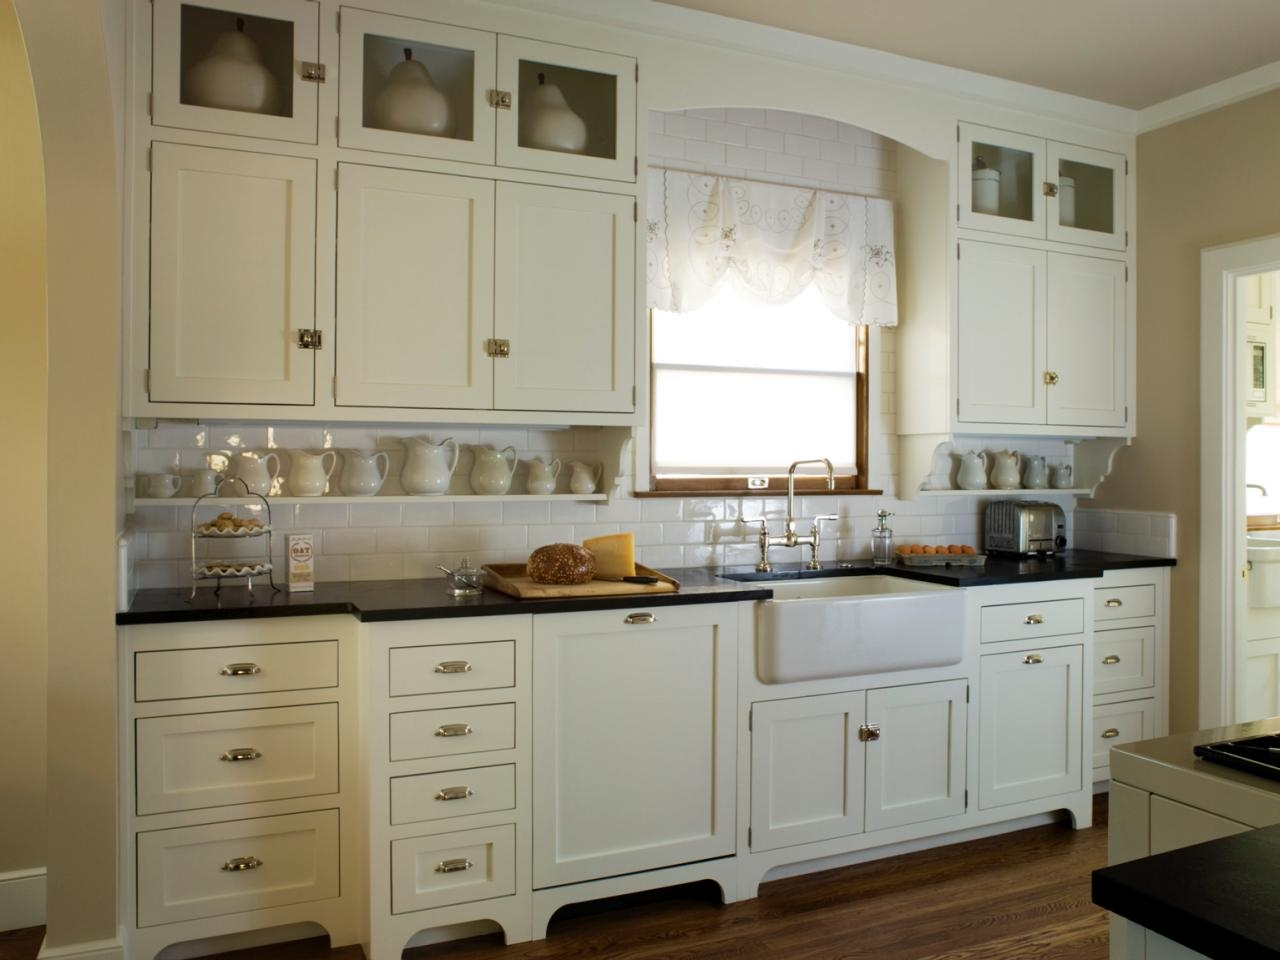 white kitchen cabinet knob ideas photo - 10